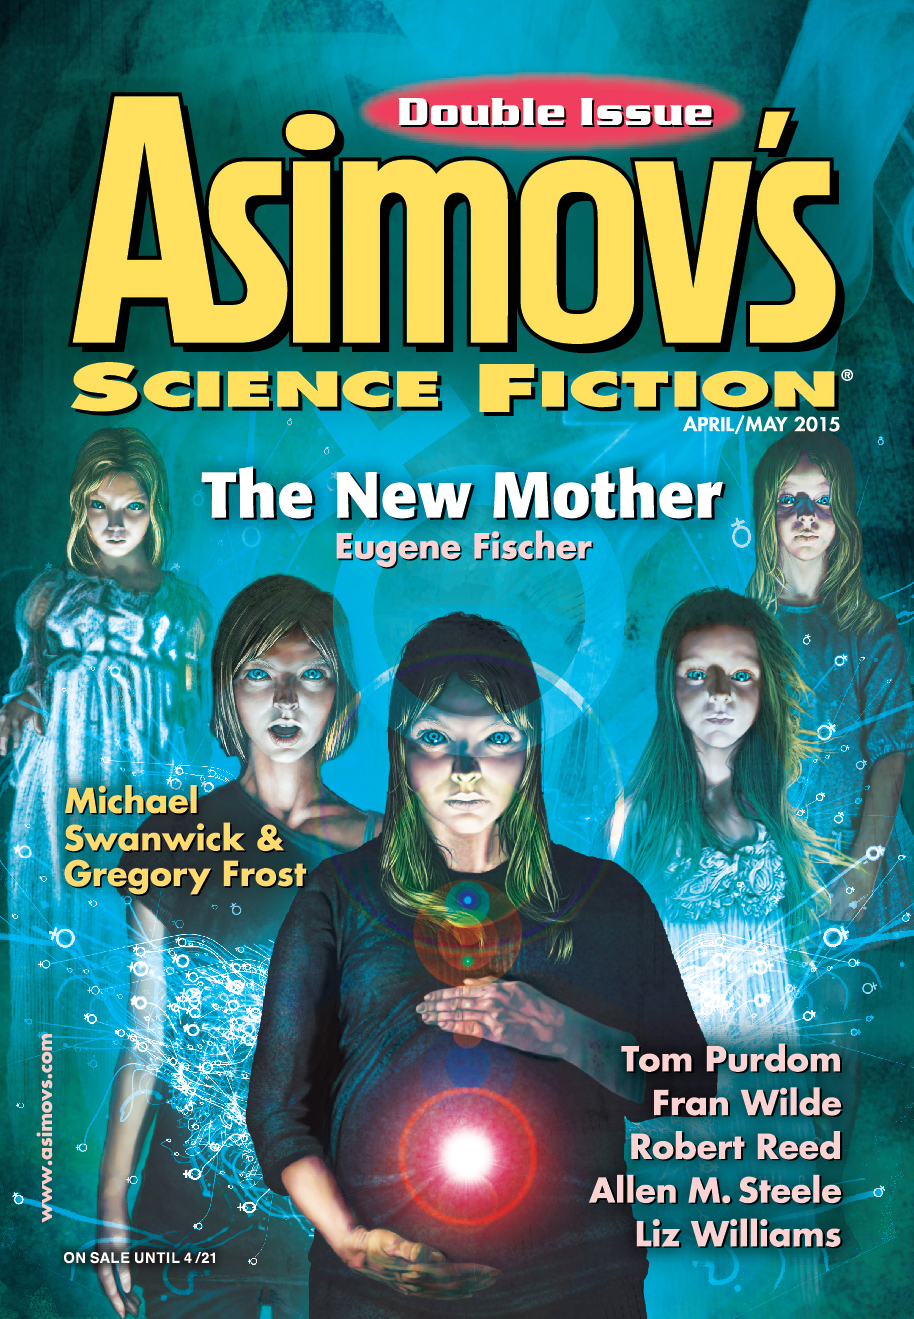 Asimov's April/May